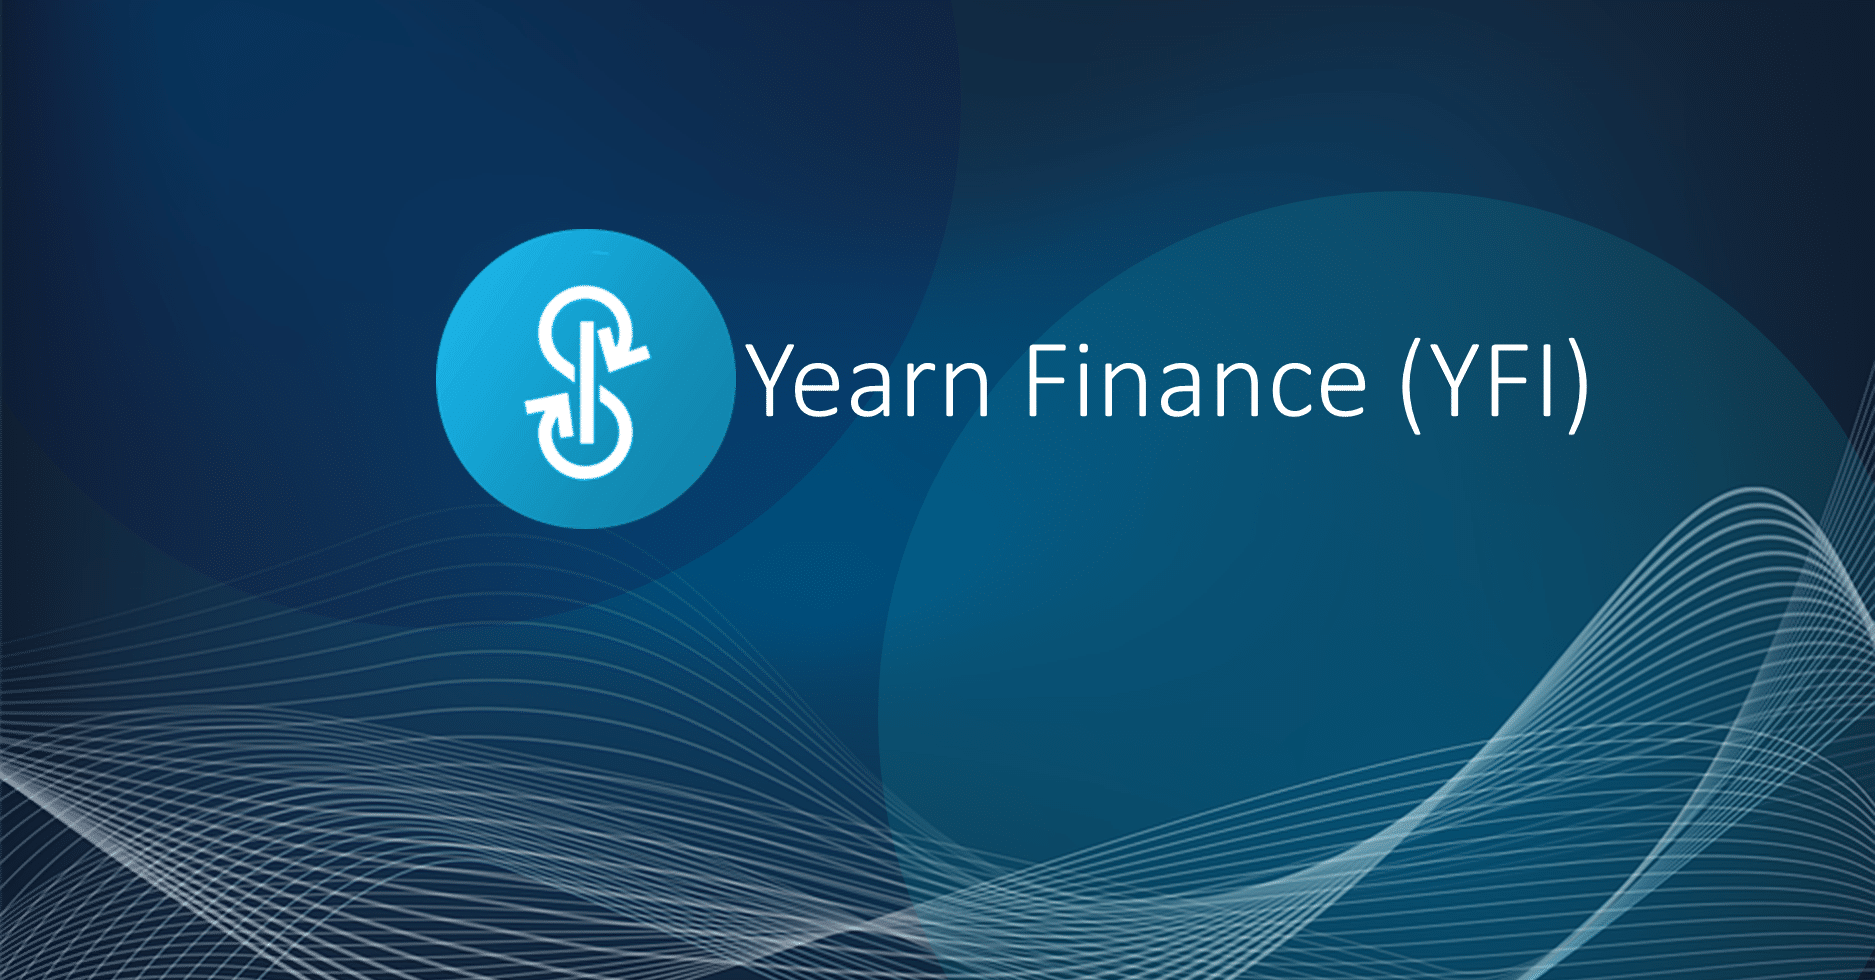 New all-time high for Yearn Finance (YFI)